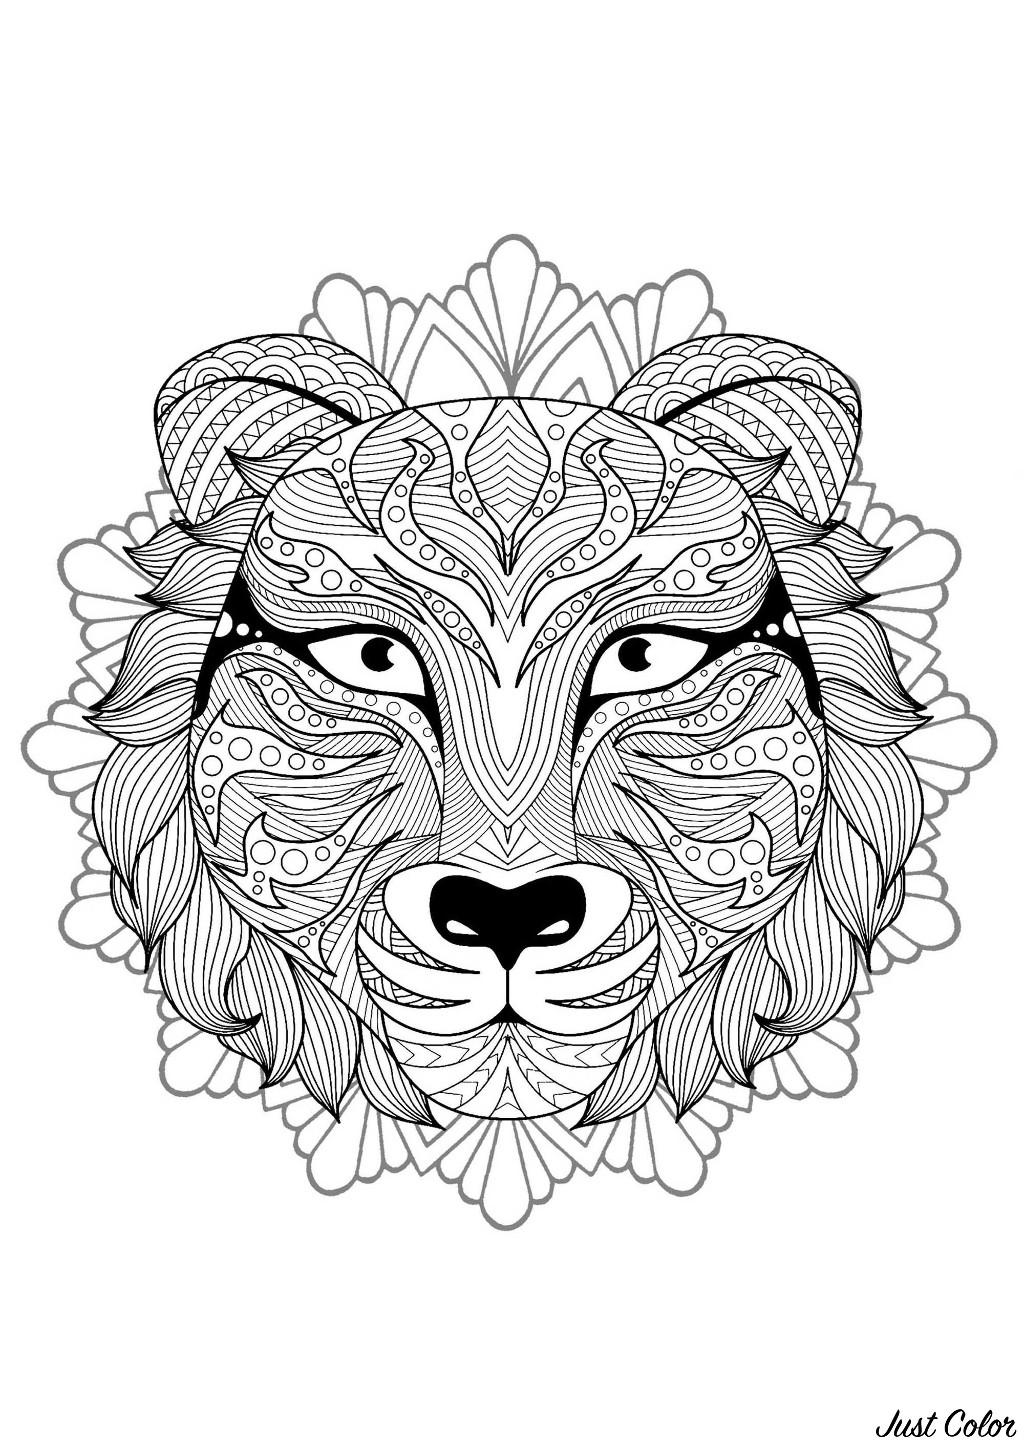 A beautiful Mandala coloring page, of great quality and originality. It's up to you to choose the most appropriate colors to give life to this tiger.